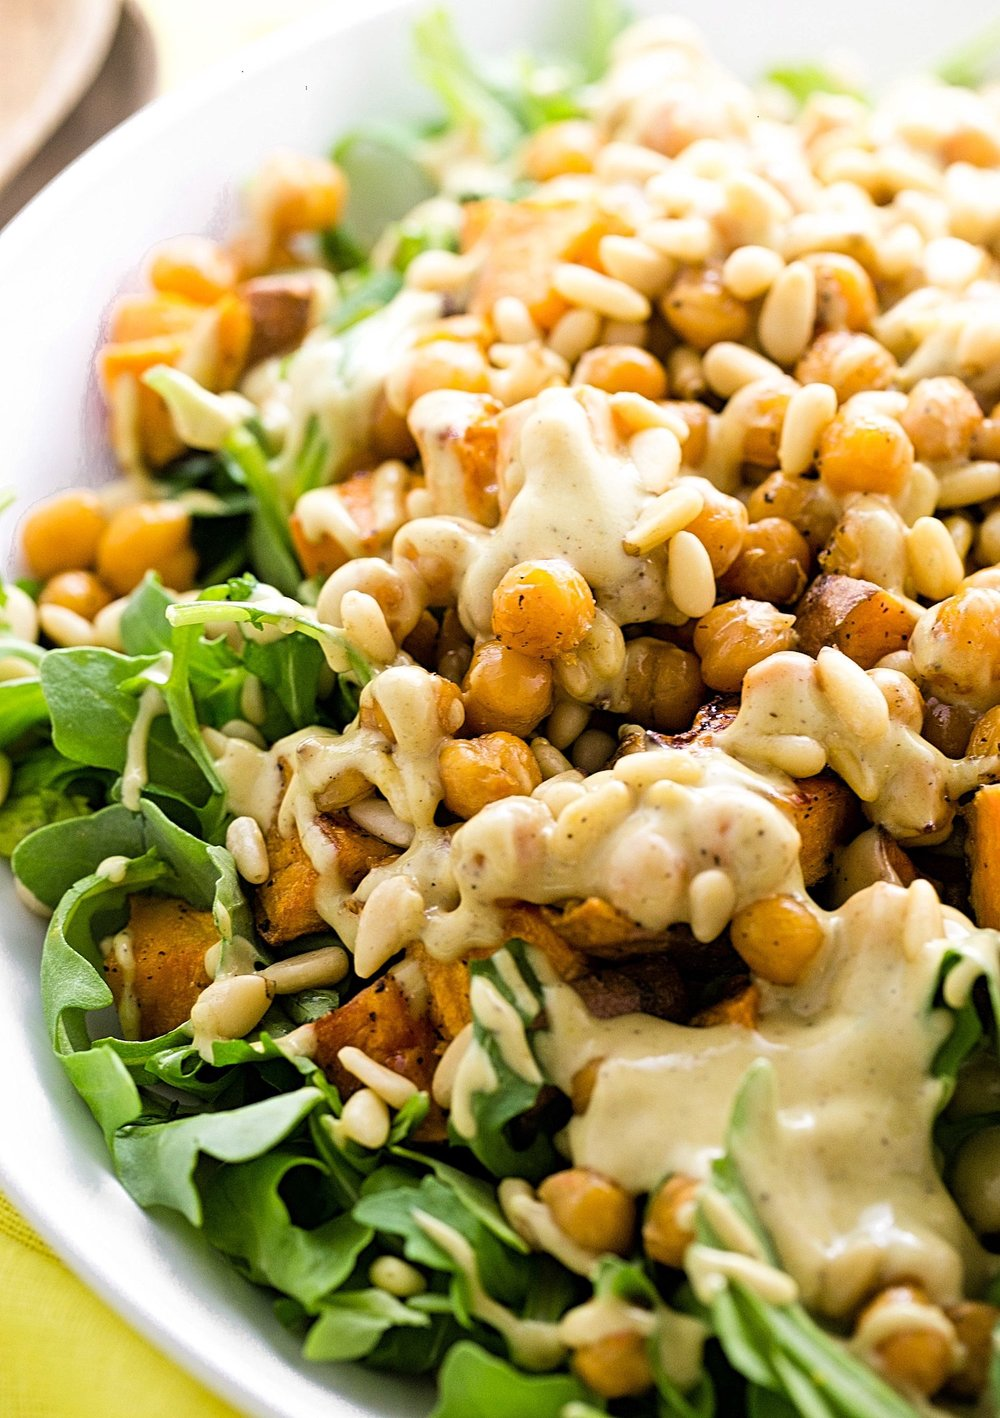 Arugula Sweet Potato Tahini Honey Mustard Salad: arugula and roasted sweet potatoes and chickpeas tossed in a tahini honey mustard dressing. Wholesome and delicious! | TrufflesandTrends.com